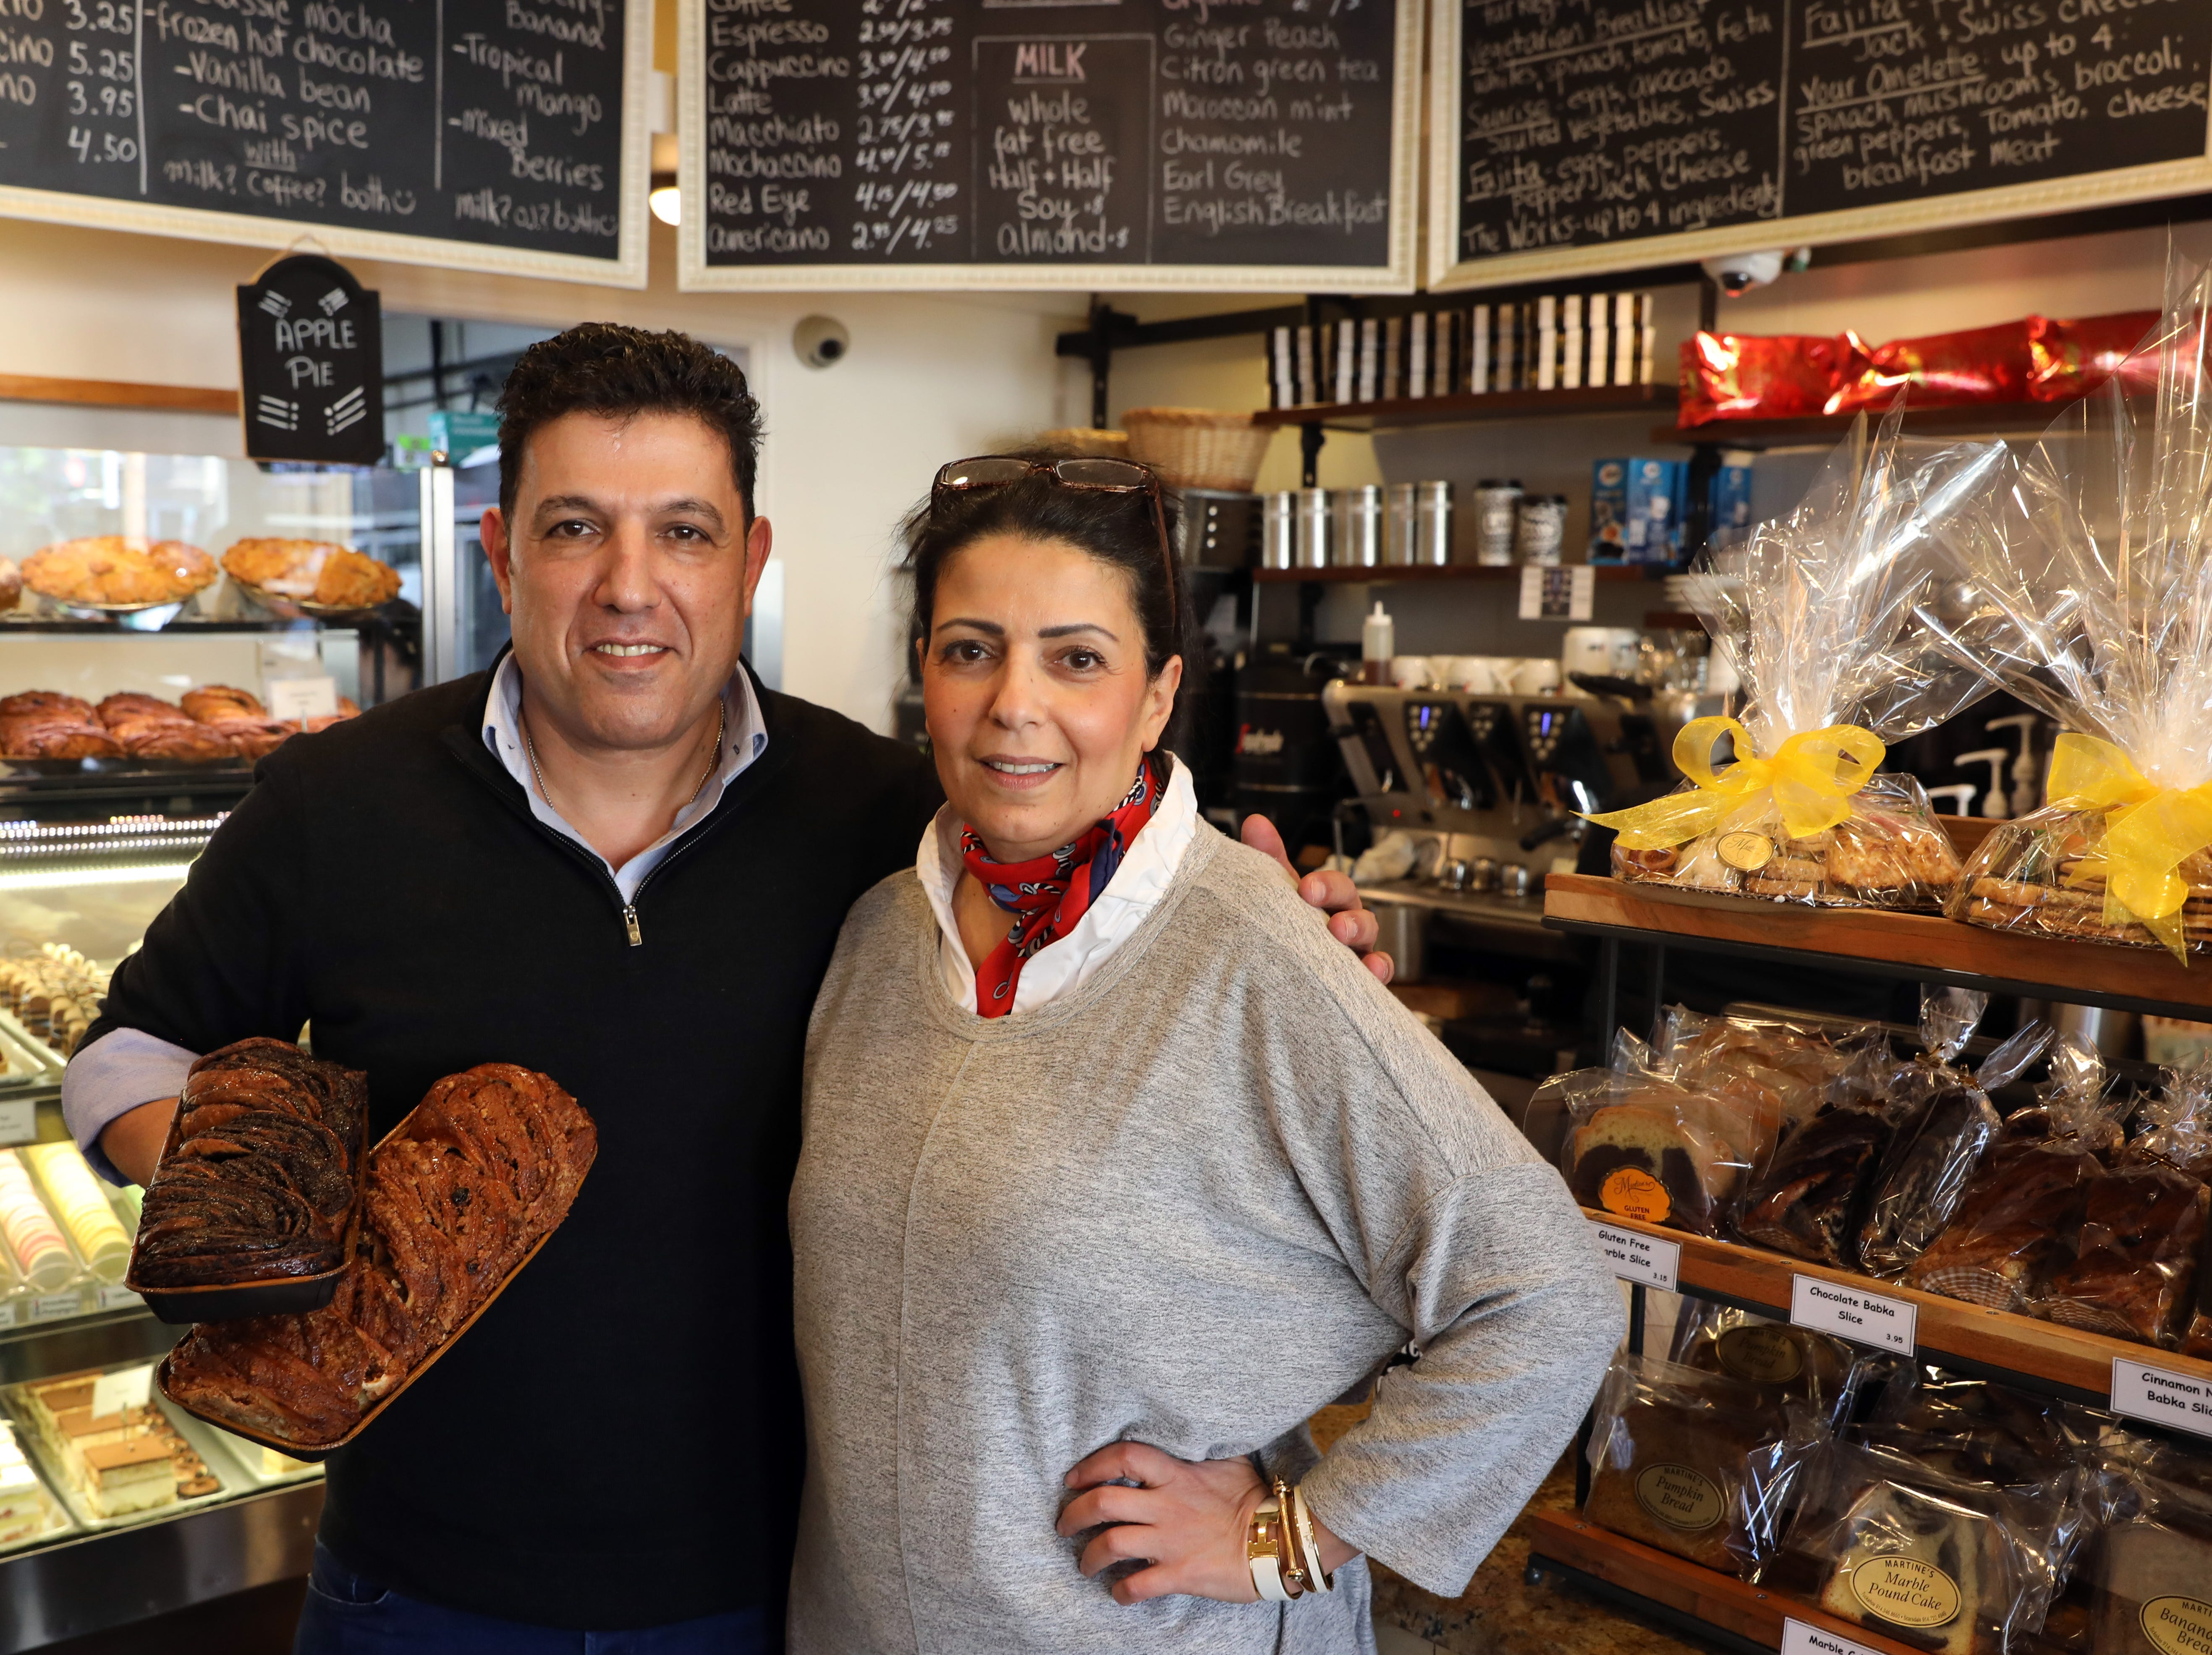 Yuval Golan, and his sister, Tal Campana, co-owners of Martine's Fine Bake Shoppe, at the Tuckahoe location Nov. 29, 2018. The family bakery, which has a second location in Scarsdale, is celebrating their 10th anniversary in business.